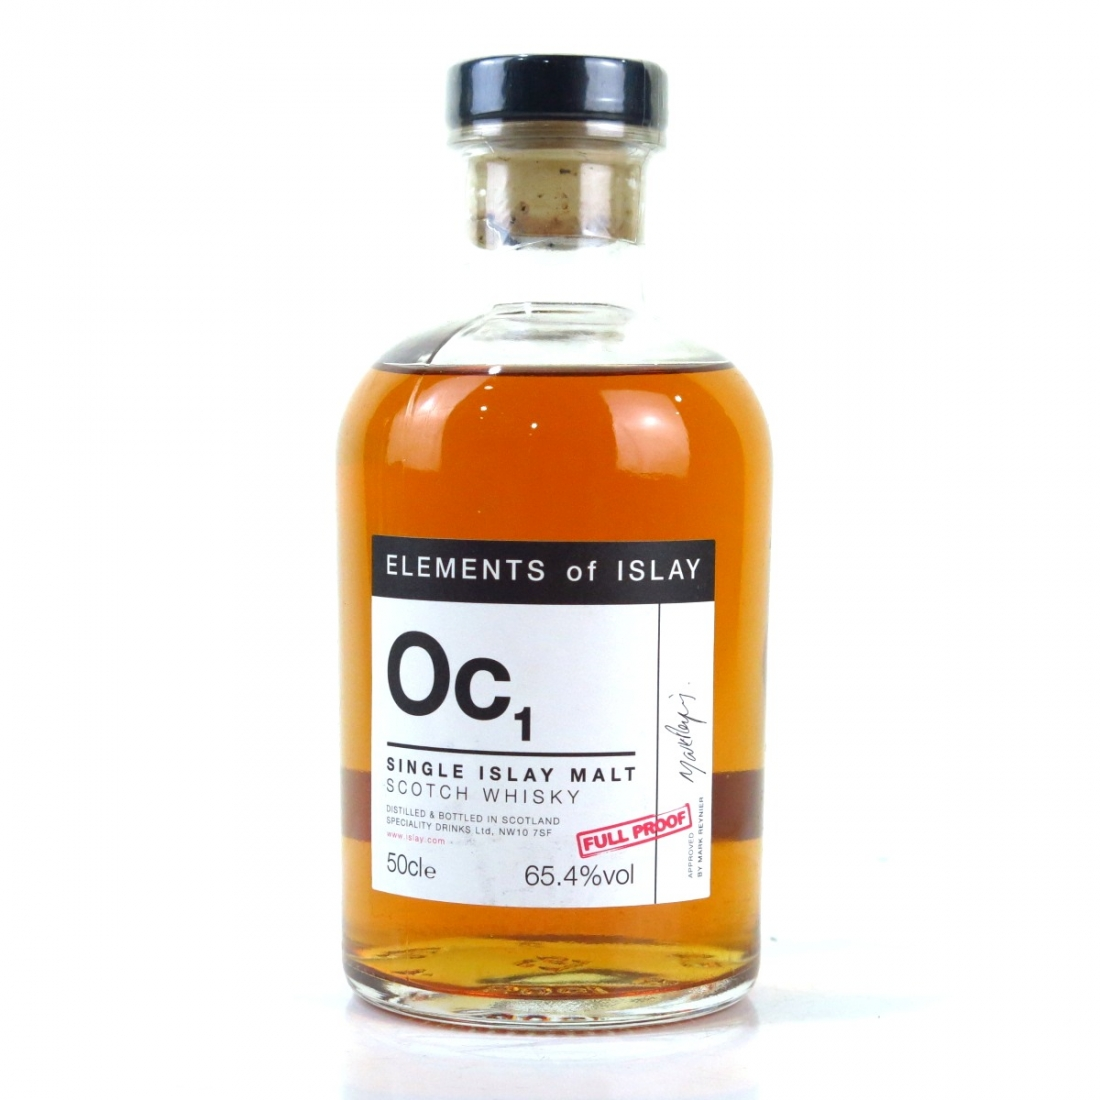 Octomore Oc1 Elements of Islay